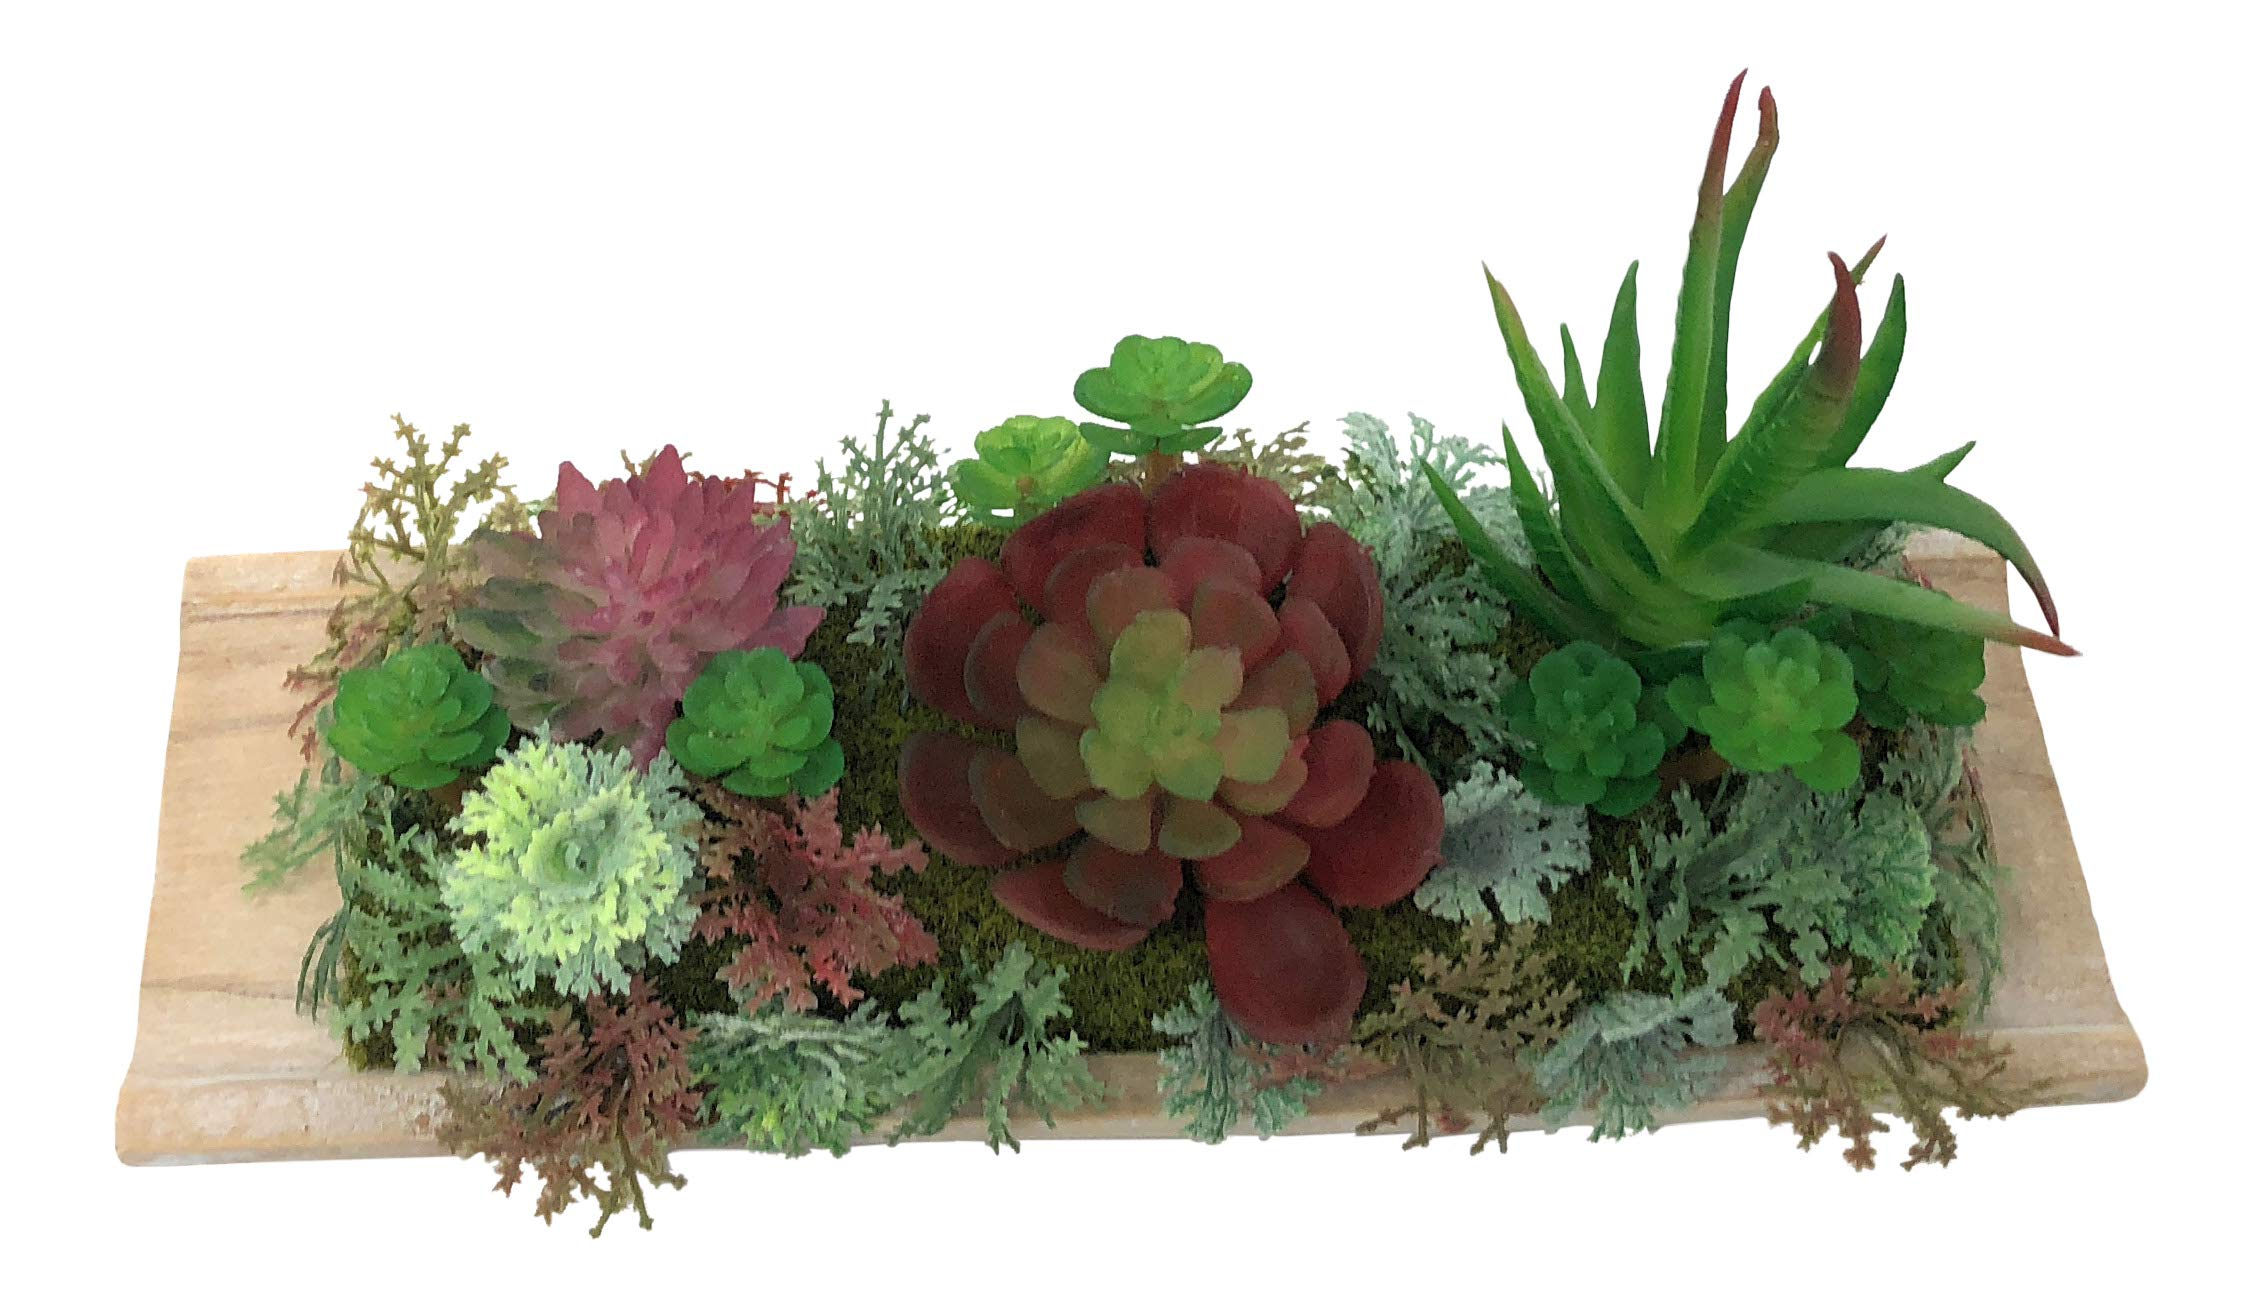 Nickanny's Modern Mini Artificial Succulent Plants Hens and Chicks - Faux Plant Home Decor On Wood Board for Office or Home (Red Green Hens Chicks Aloe Long Wooden Stand)